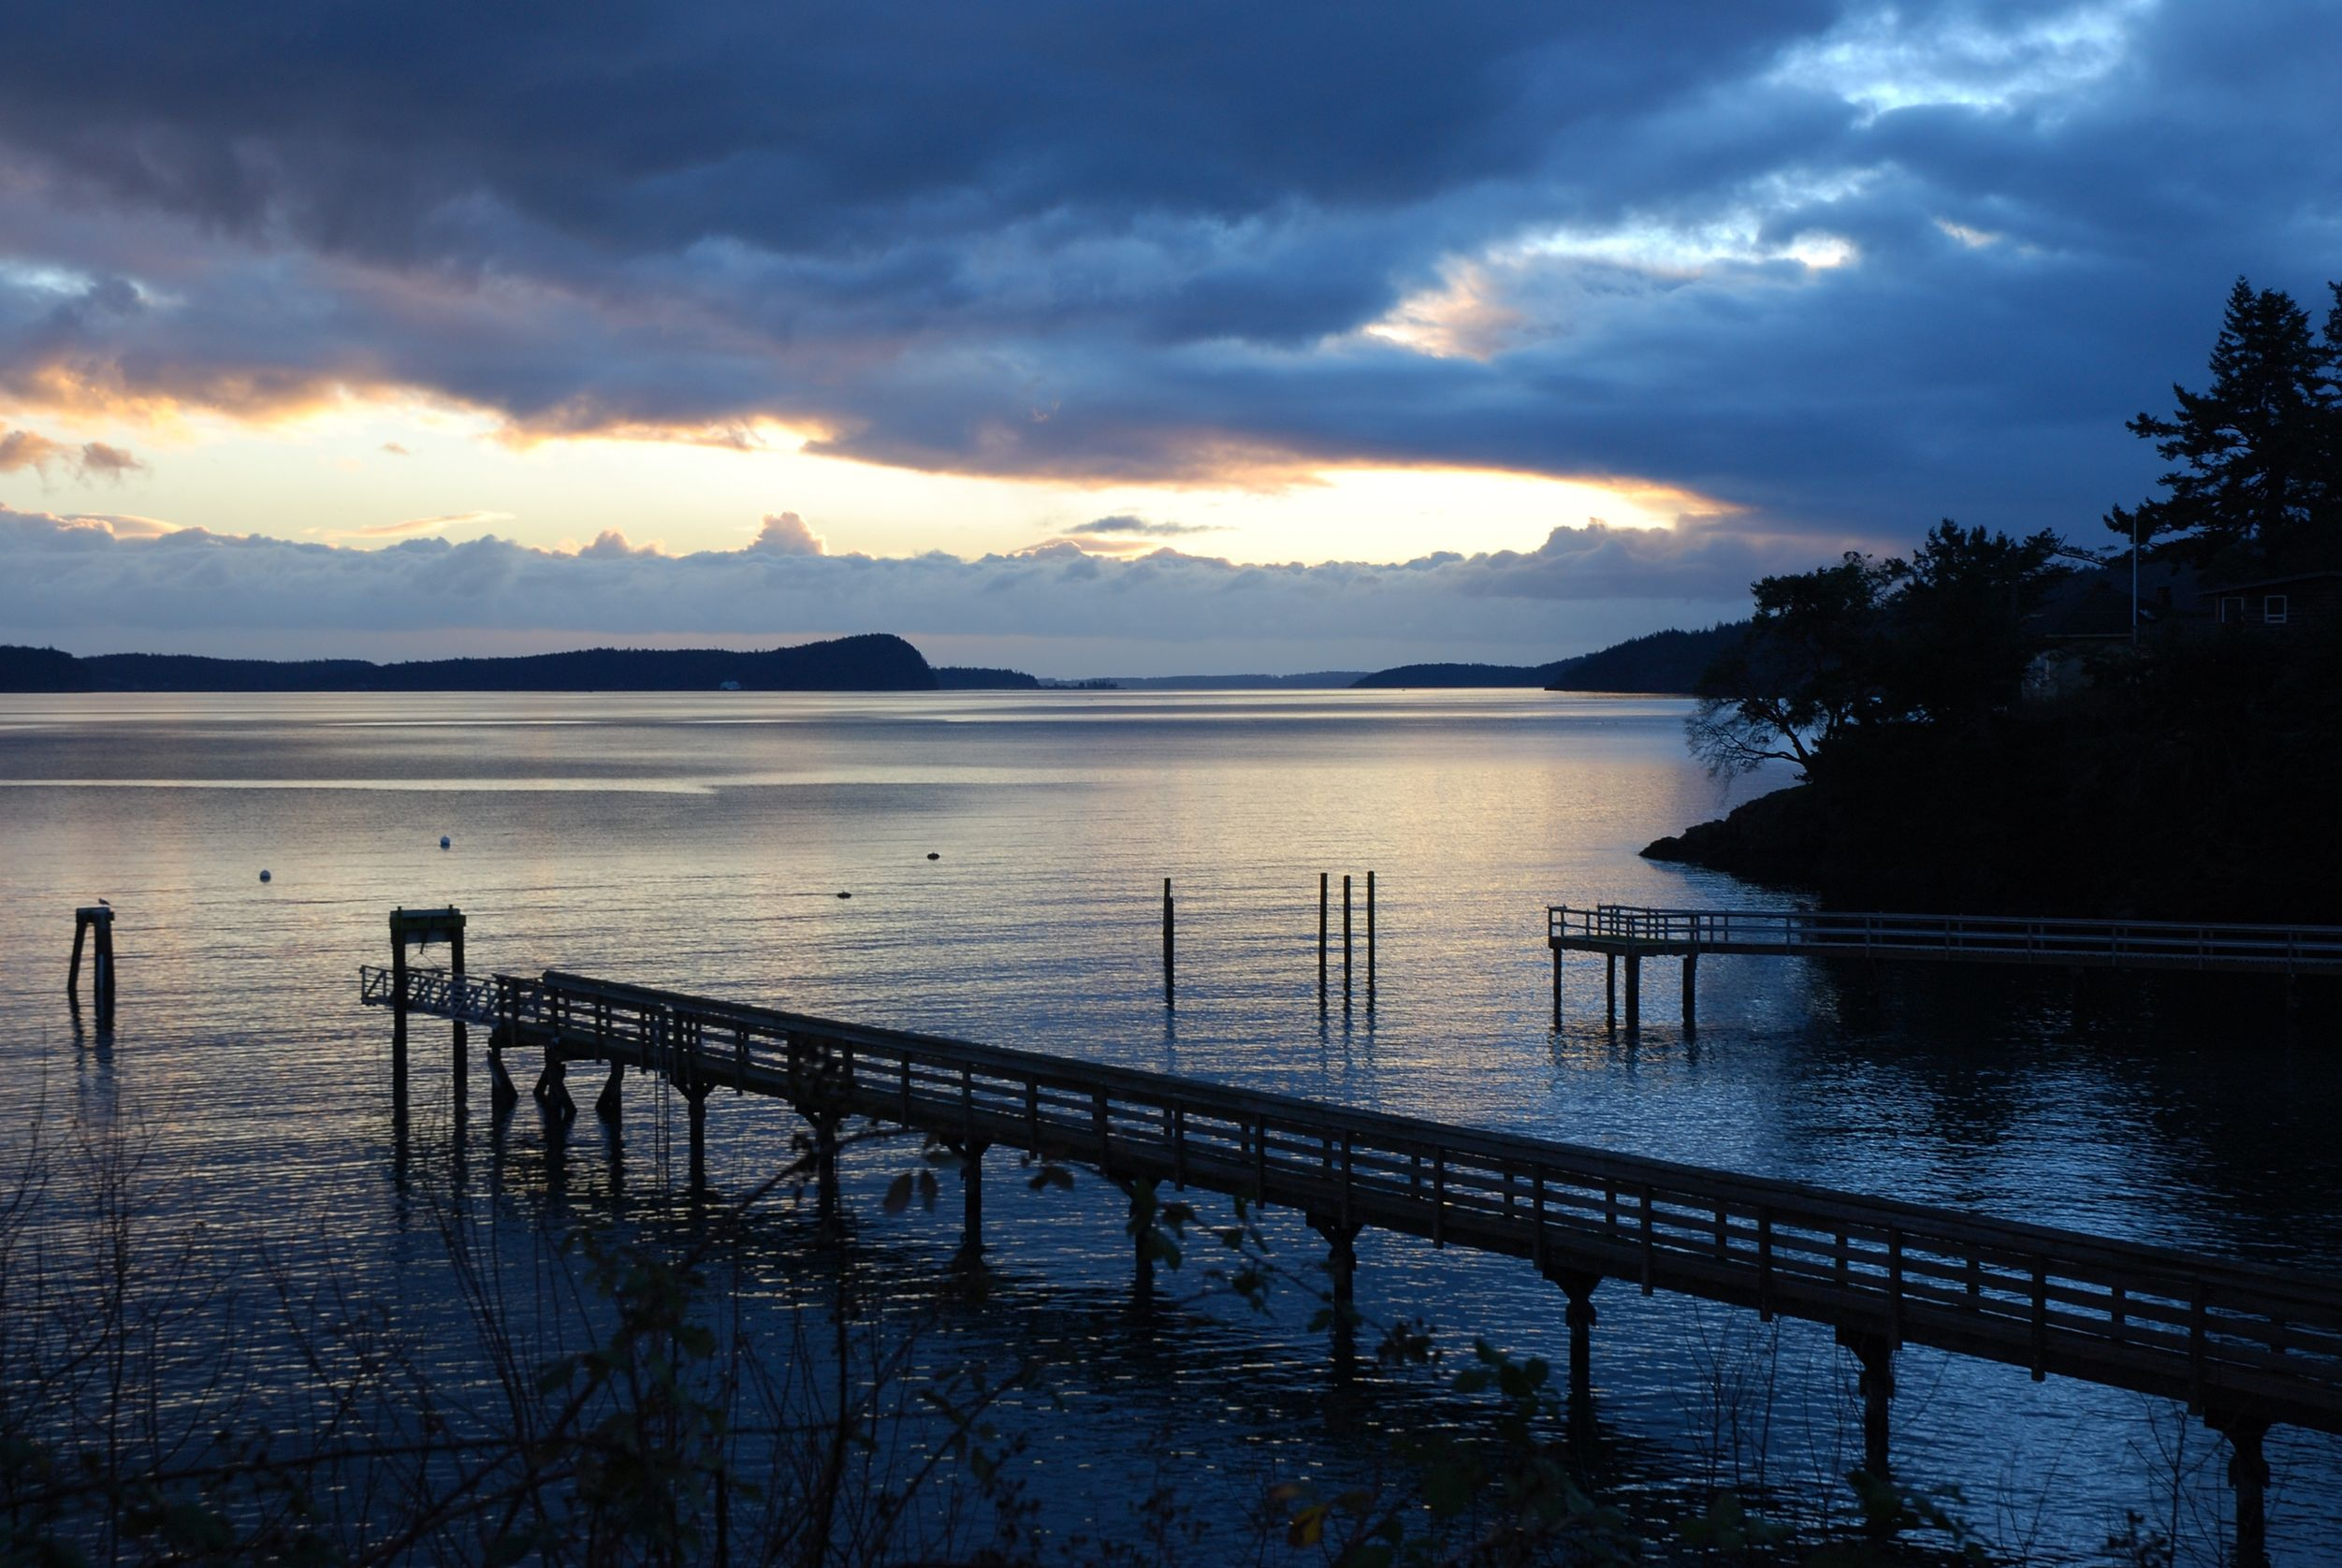 twilight at olga dock on orcas island washington